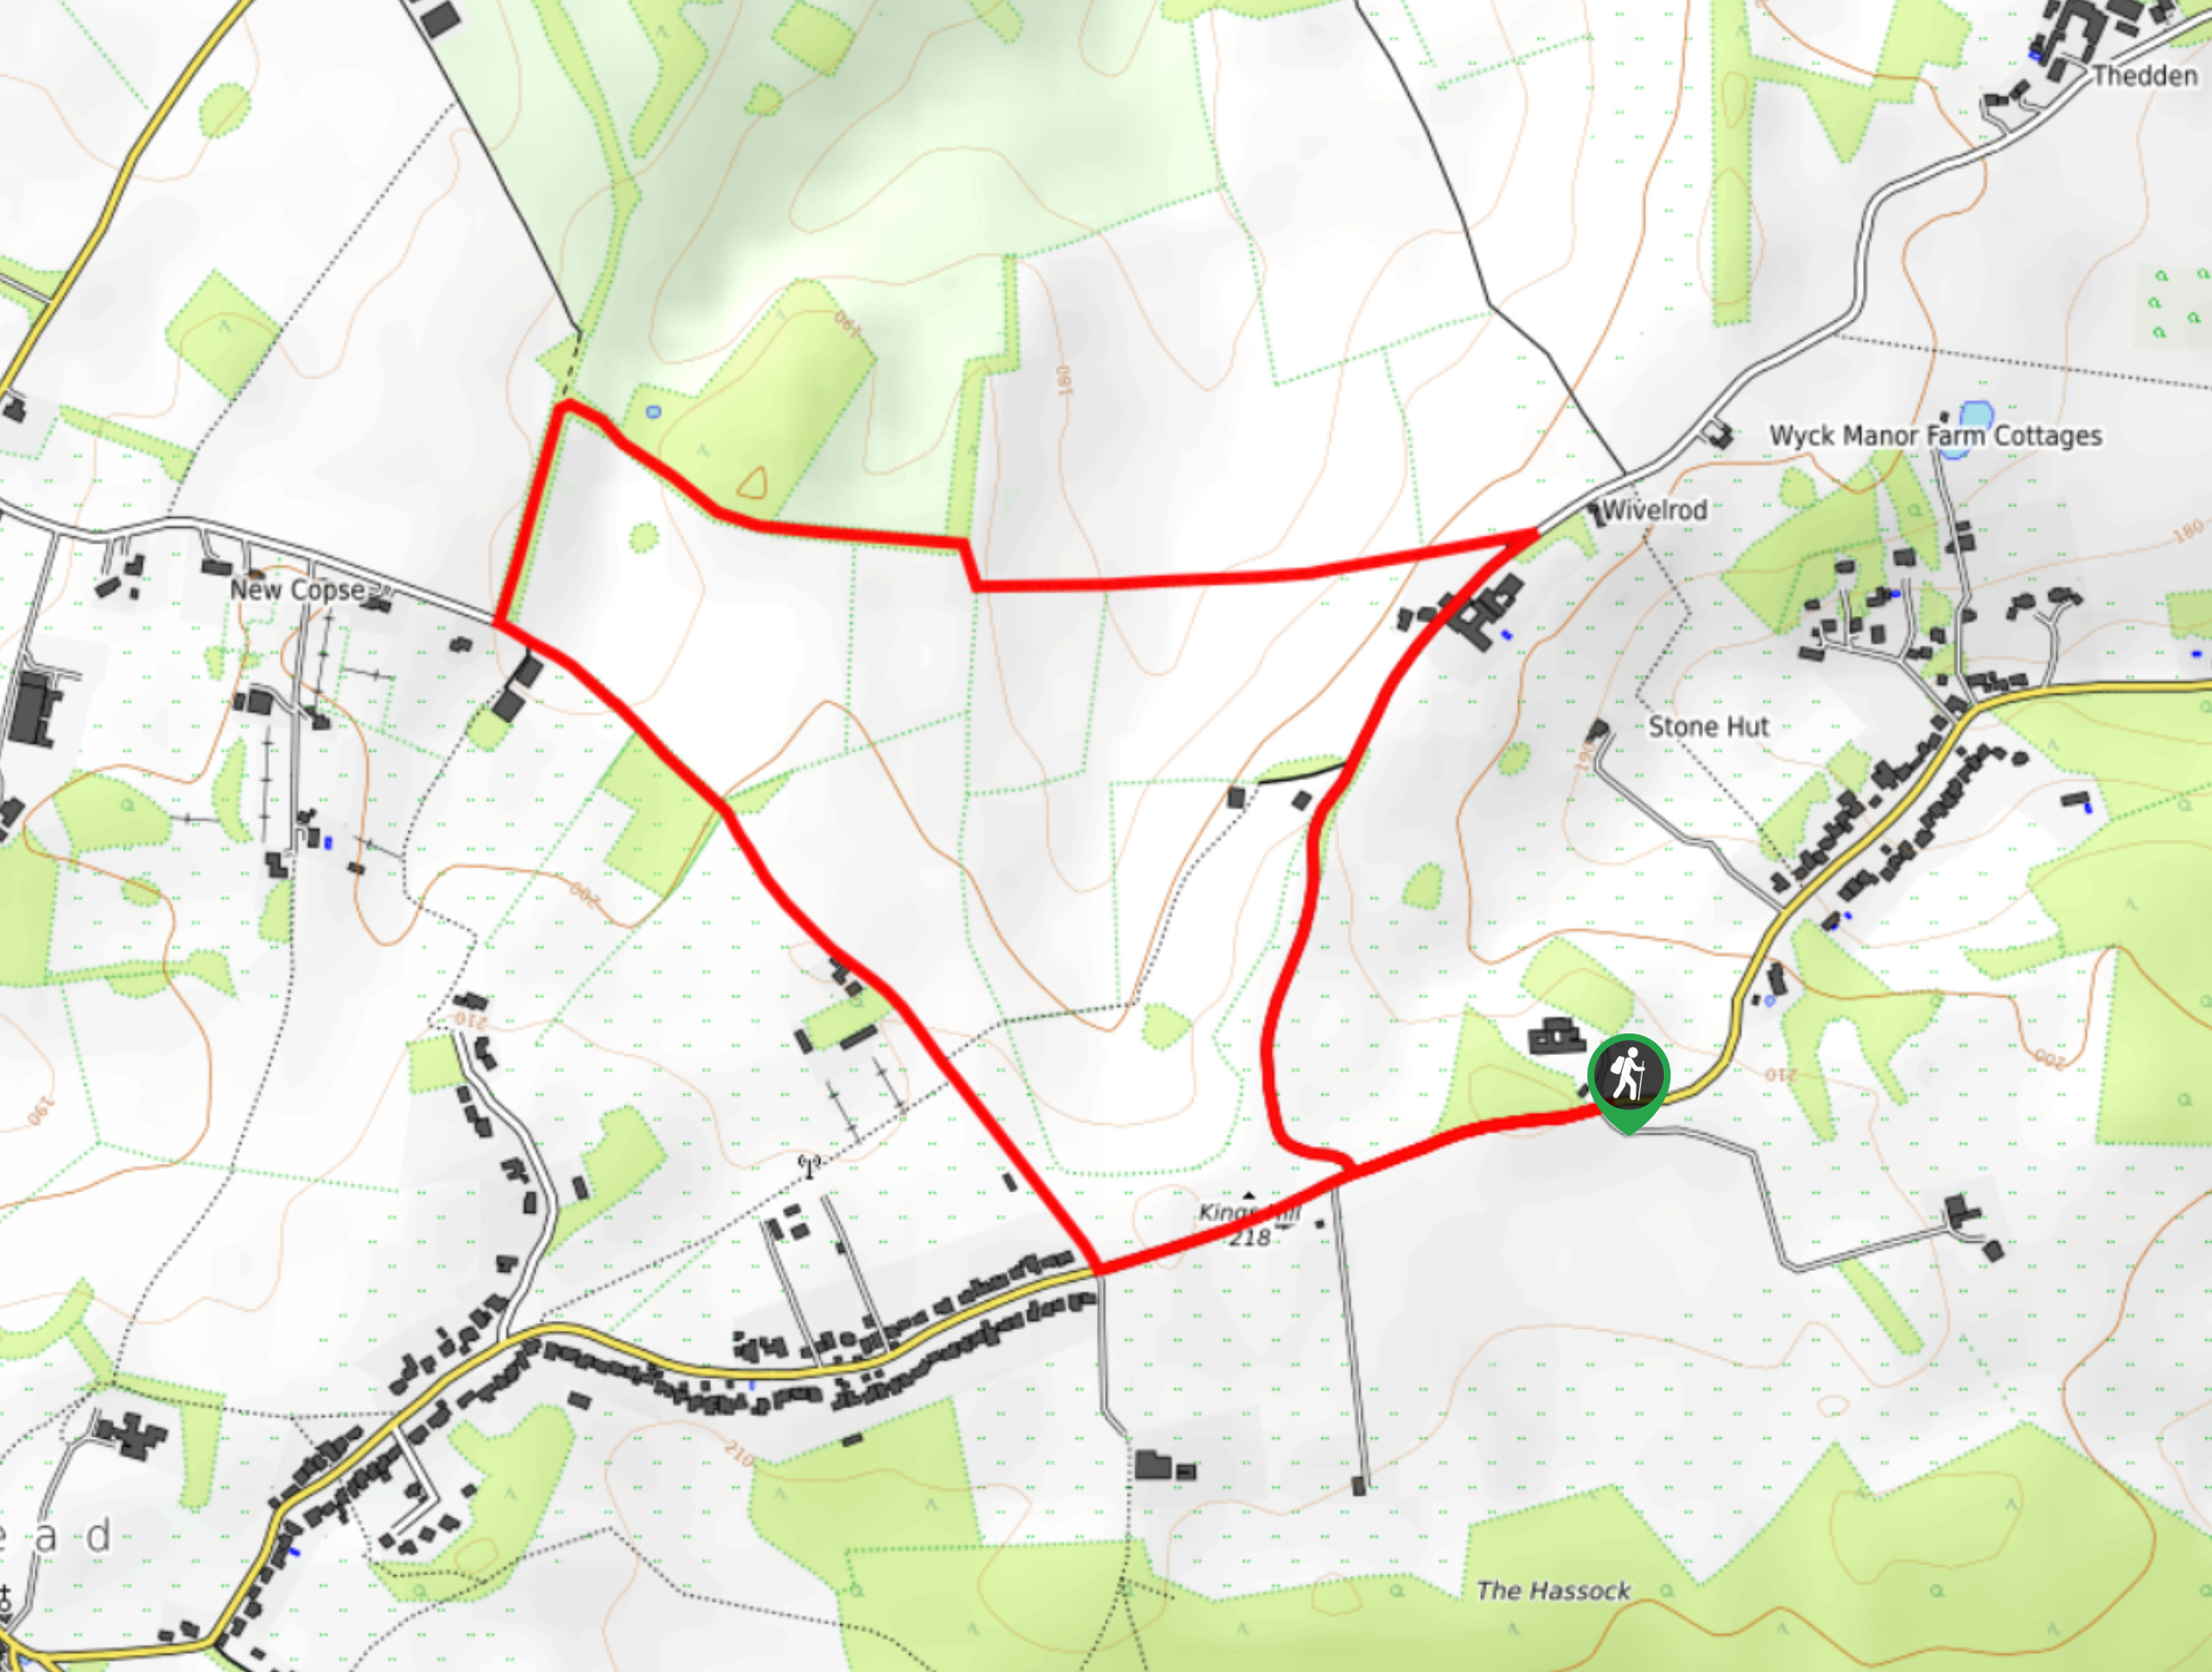 Alton Abbey to New Copse to Wivelrod Circular Walk Map